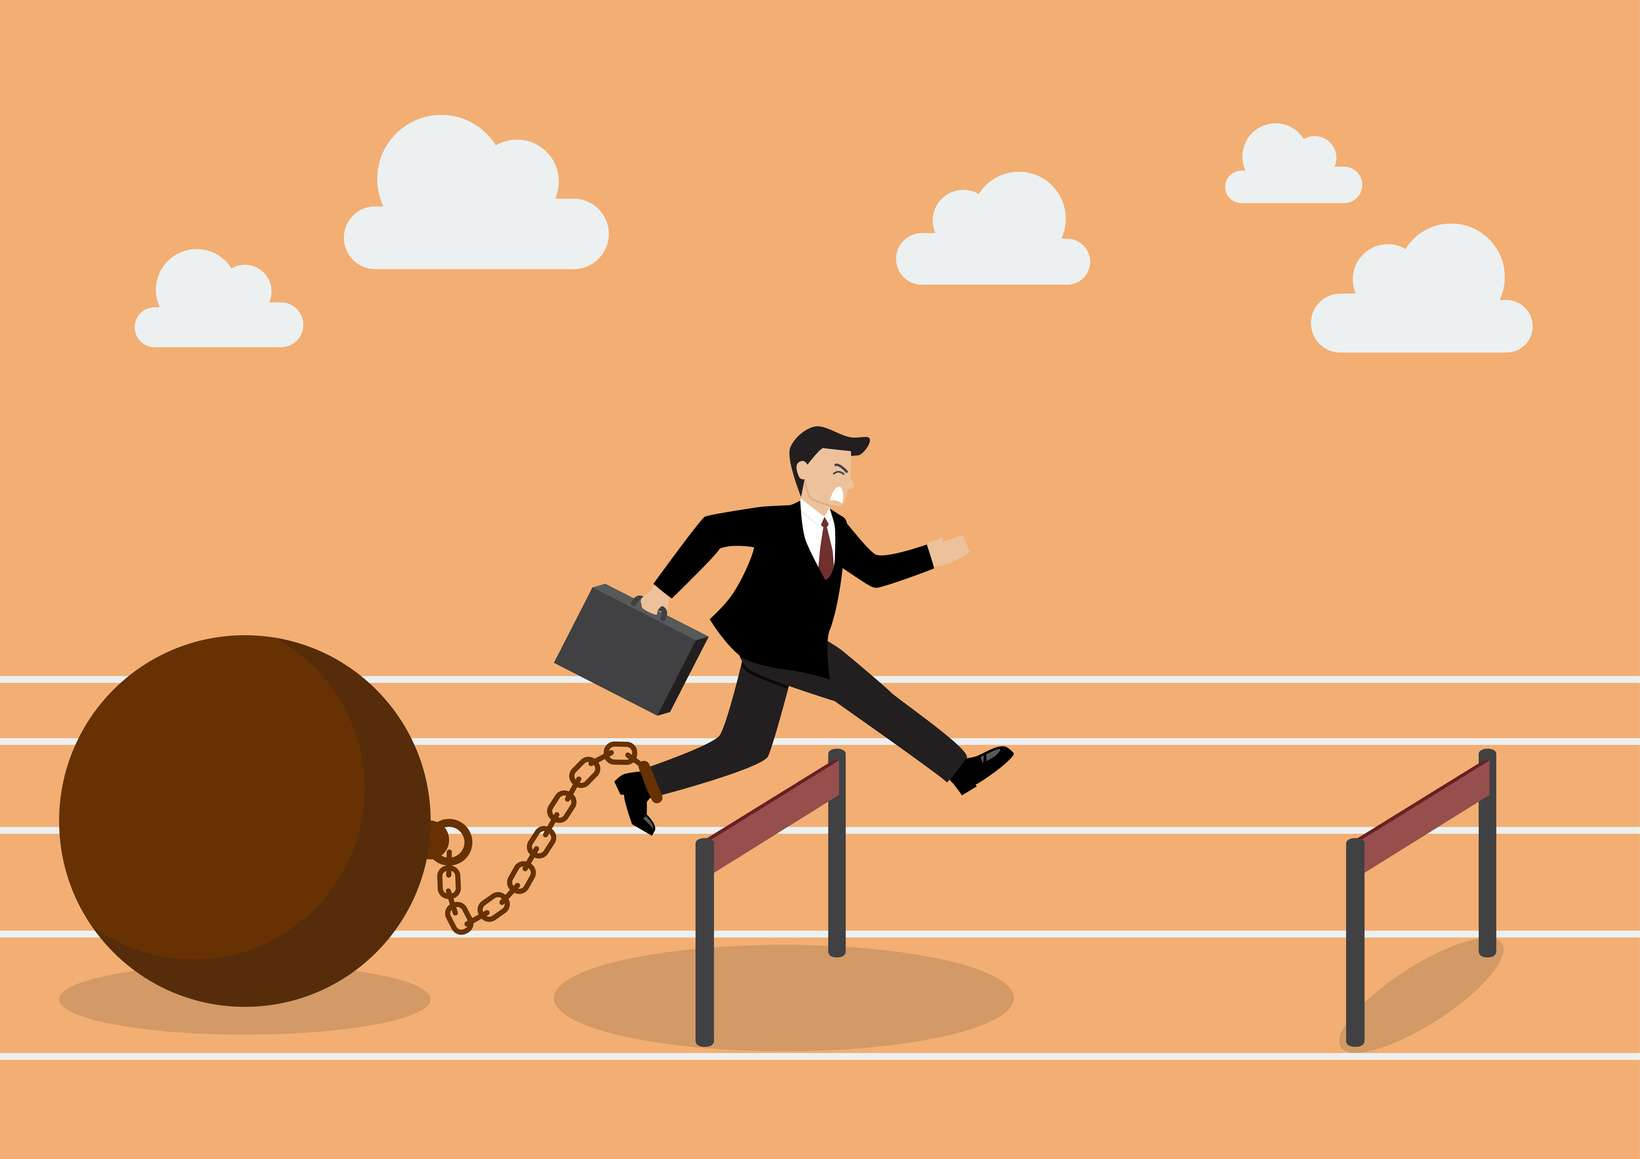 Businessman jumping over hurdle with the weight. Business concept